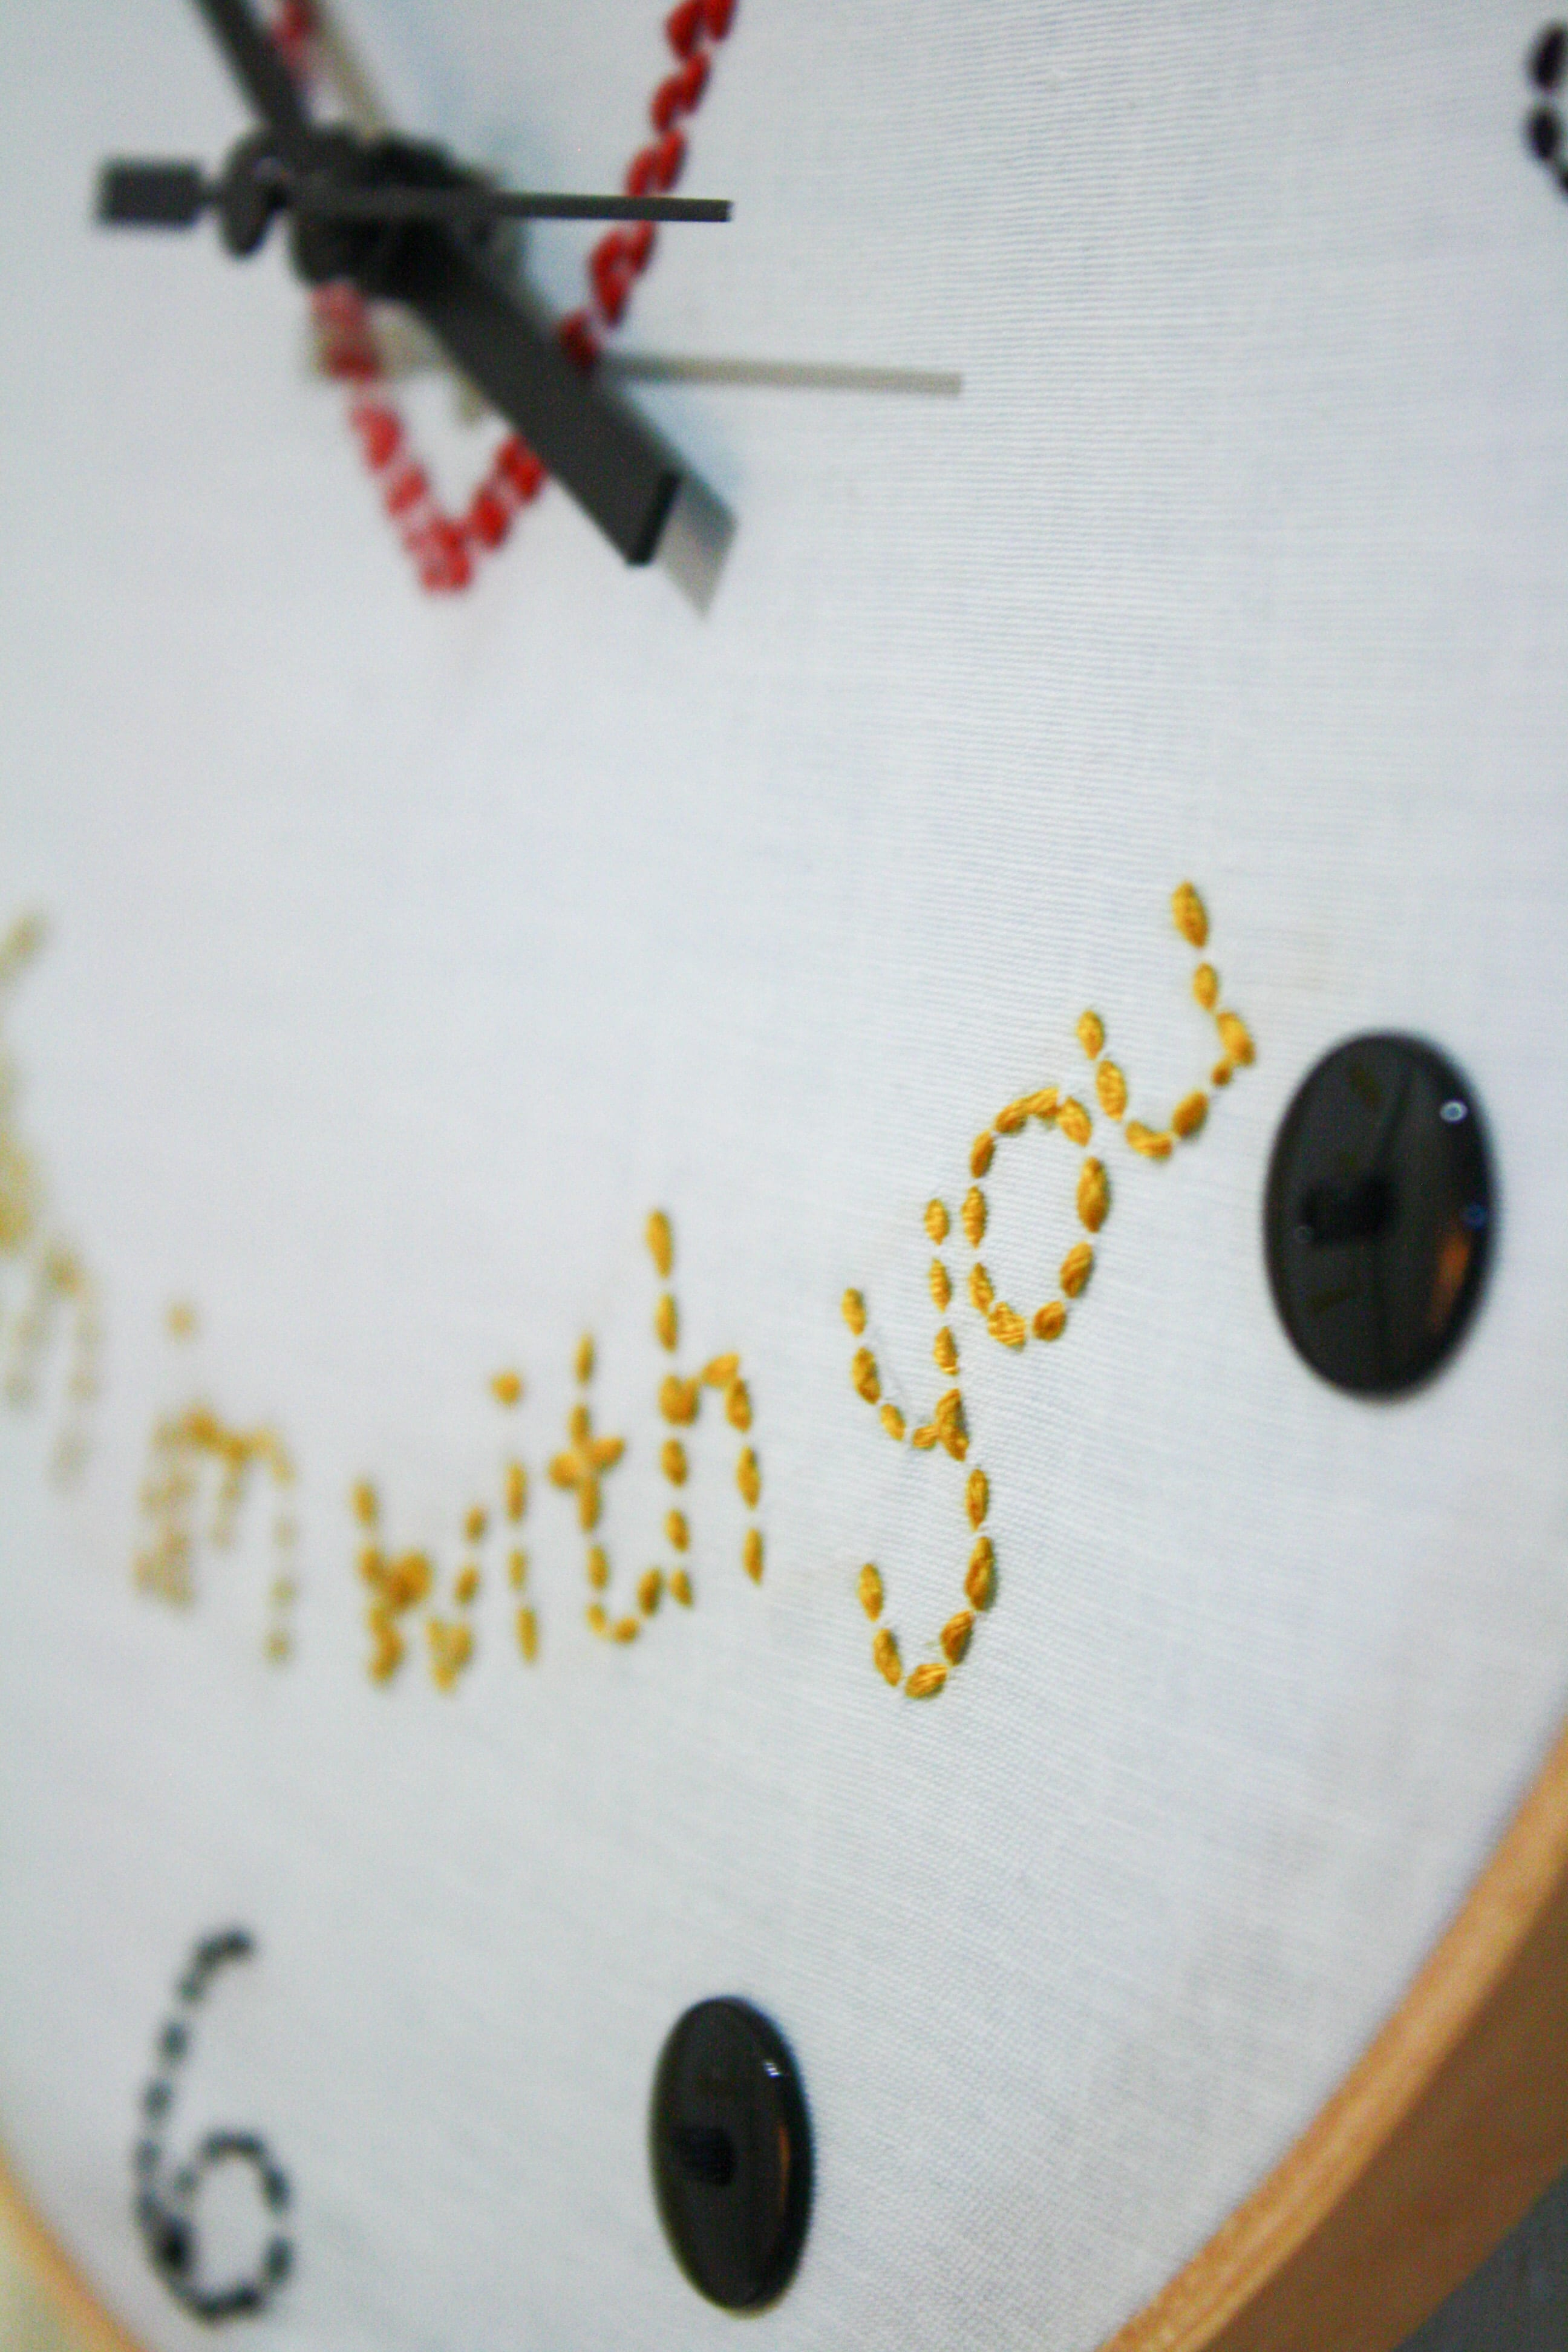 How to Make an Embroidery Hoop Clock